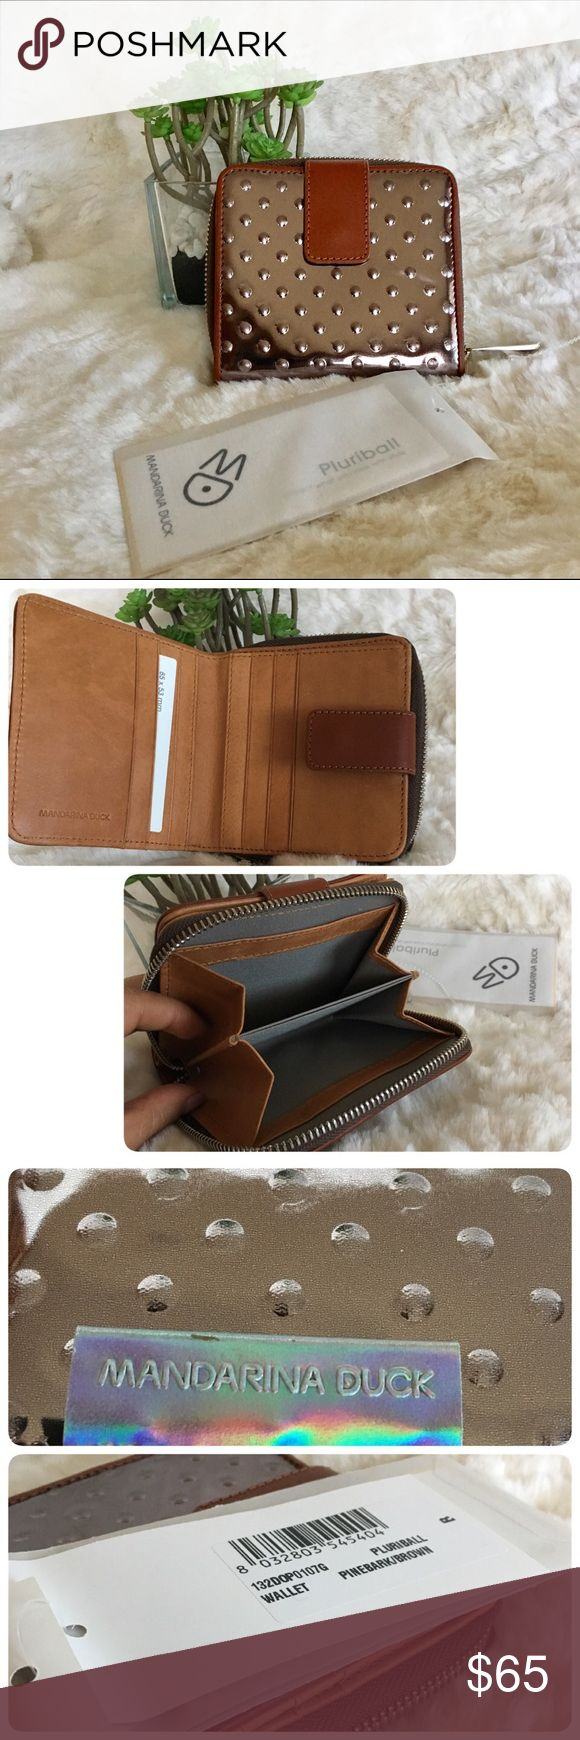 Mandarina Duck copper wallet pluriball made Italy Mandarina Duck Pluriball small wallet. Beautiful copper metallic tone, pine bark/brown color leather inside and gray lining. Made in Italy,new with tags. Mandarina Duck Bags Wallets